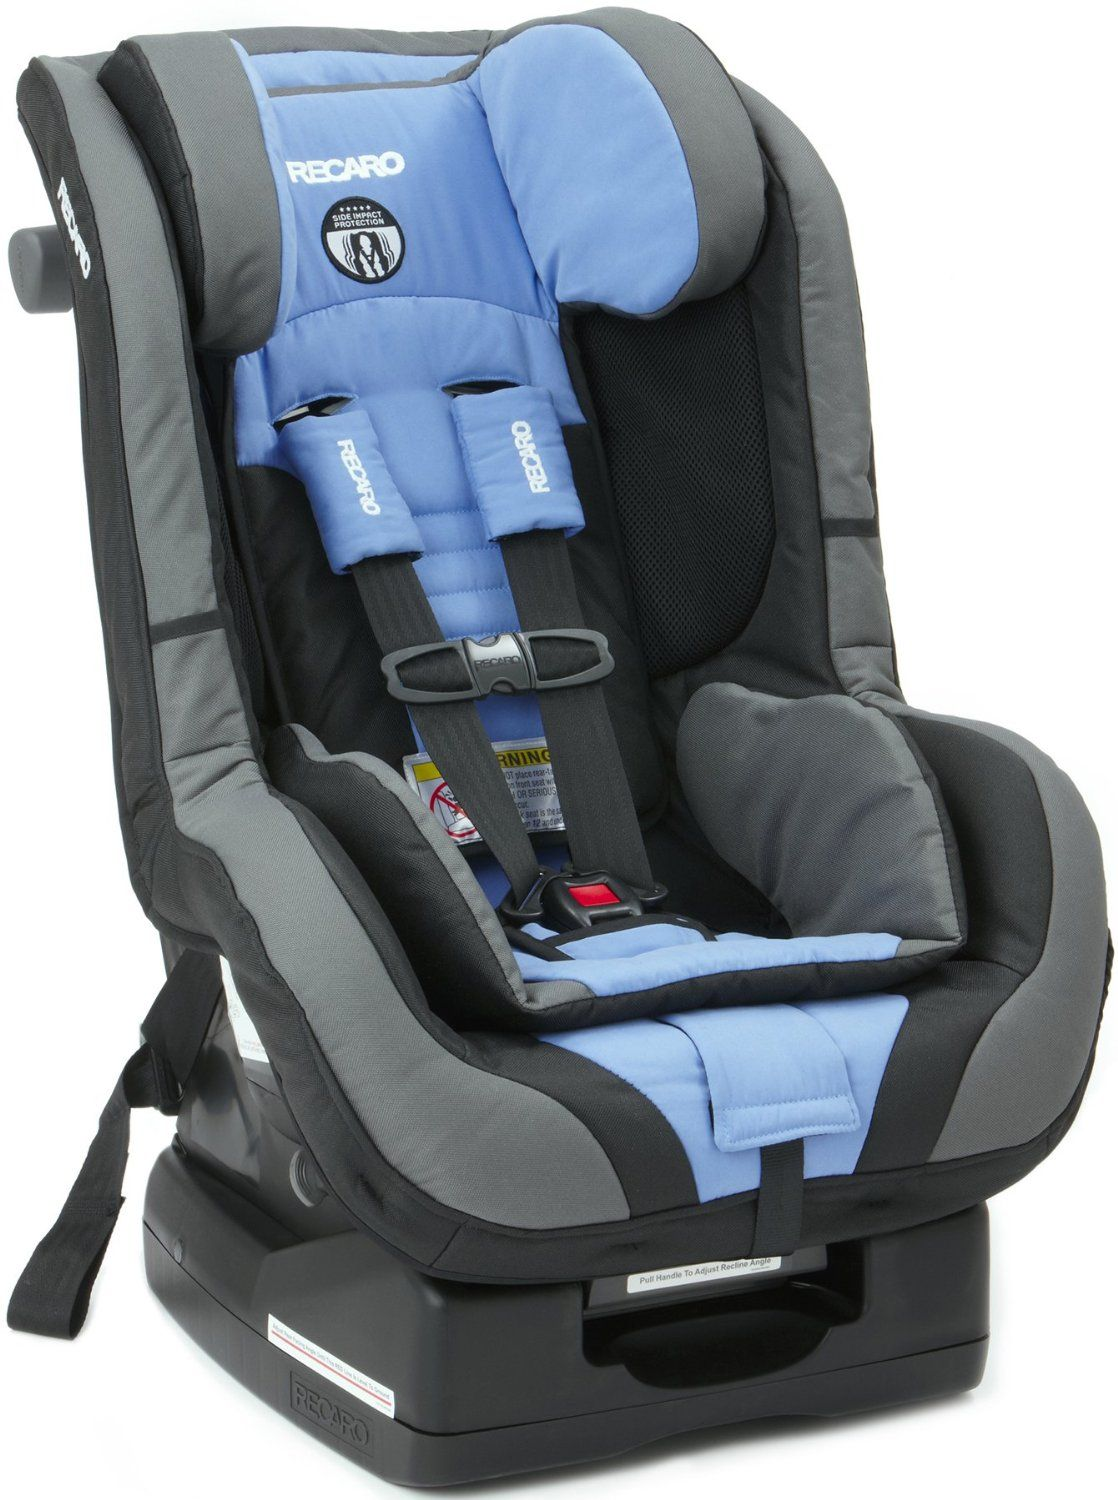 Recaro ProRIDE Convertible Car Seat Offers Multiple Safety Features Side Impact Protection A Head Restraint And Vehicle Belt Lock Off Mechanism